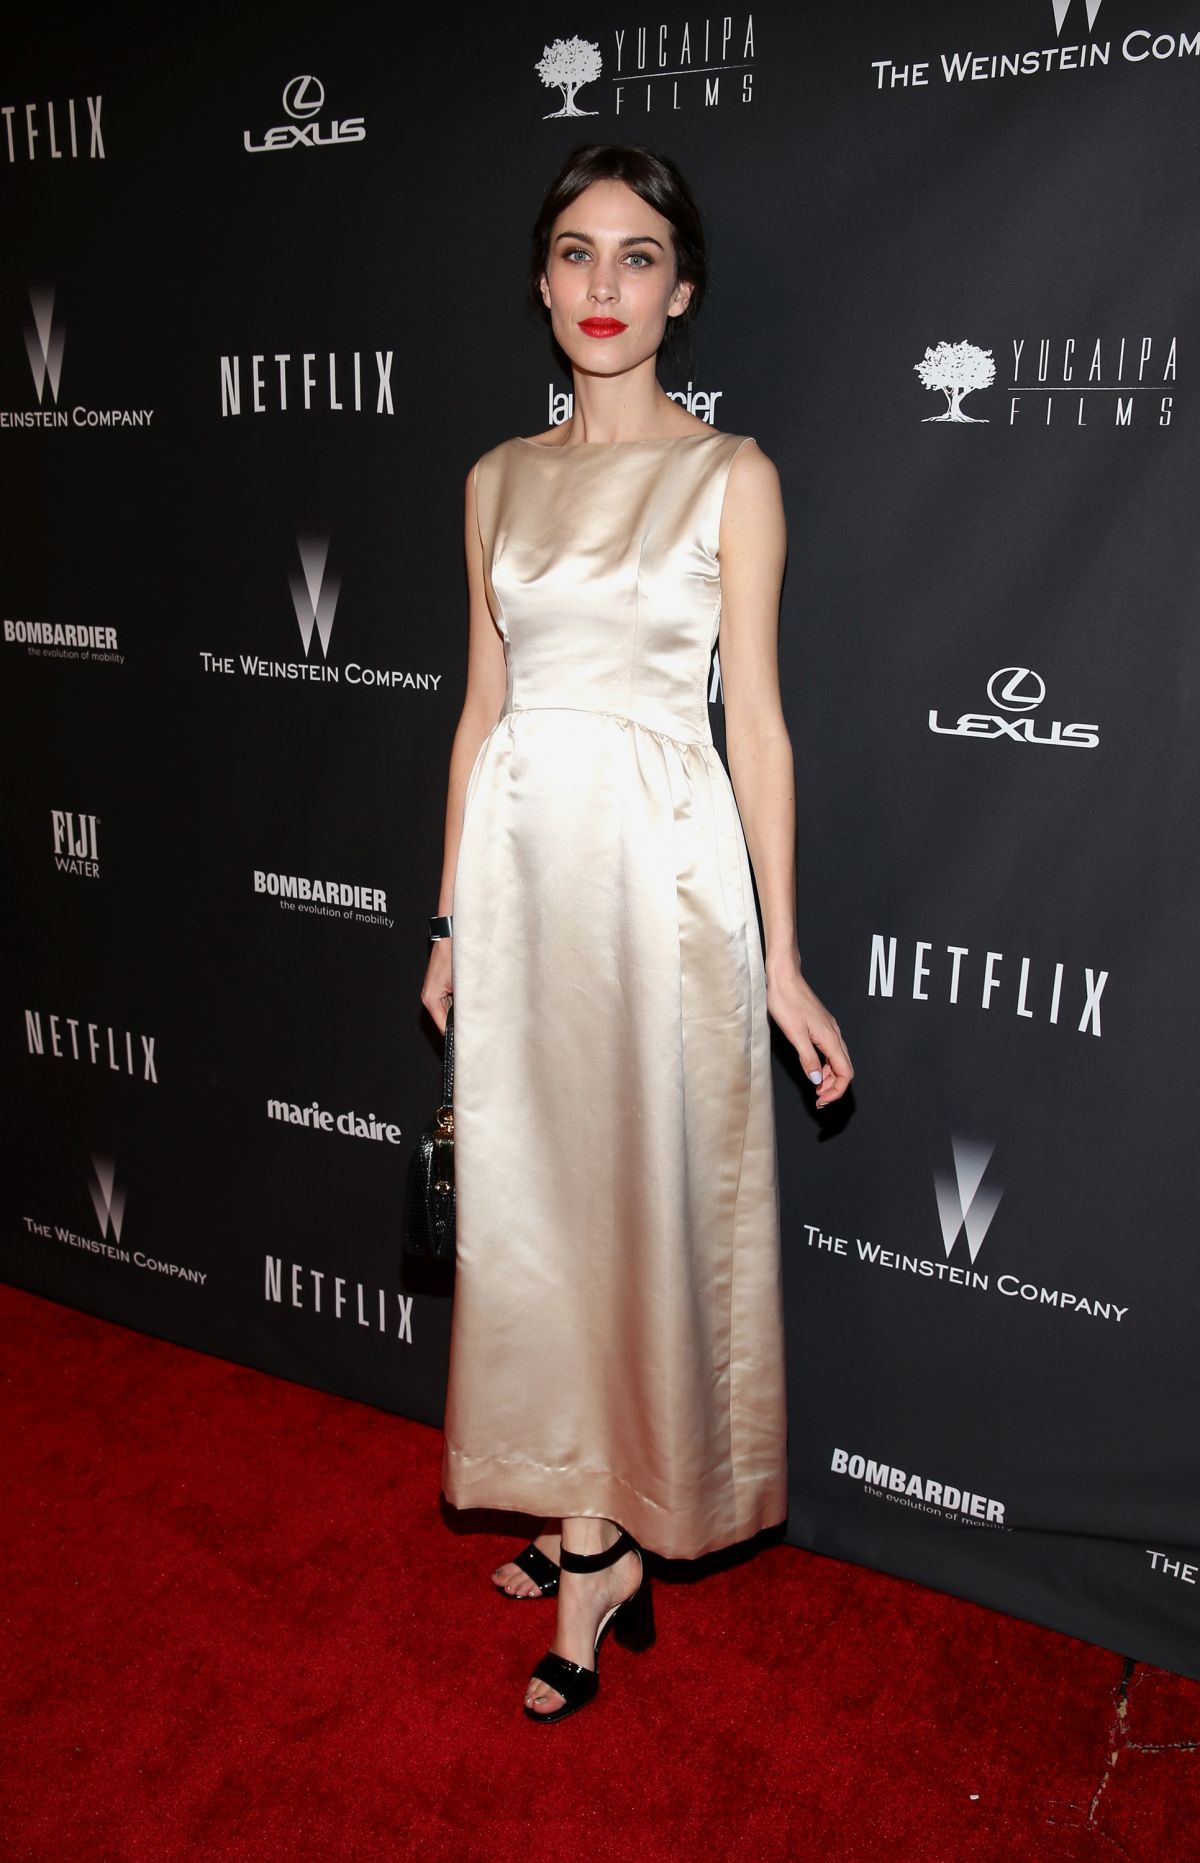 ALEXA CHUNG at The Weinstein Company and Netflix Golden Globe After Party